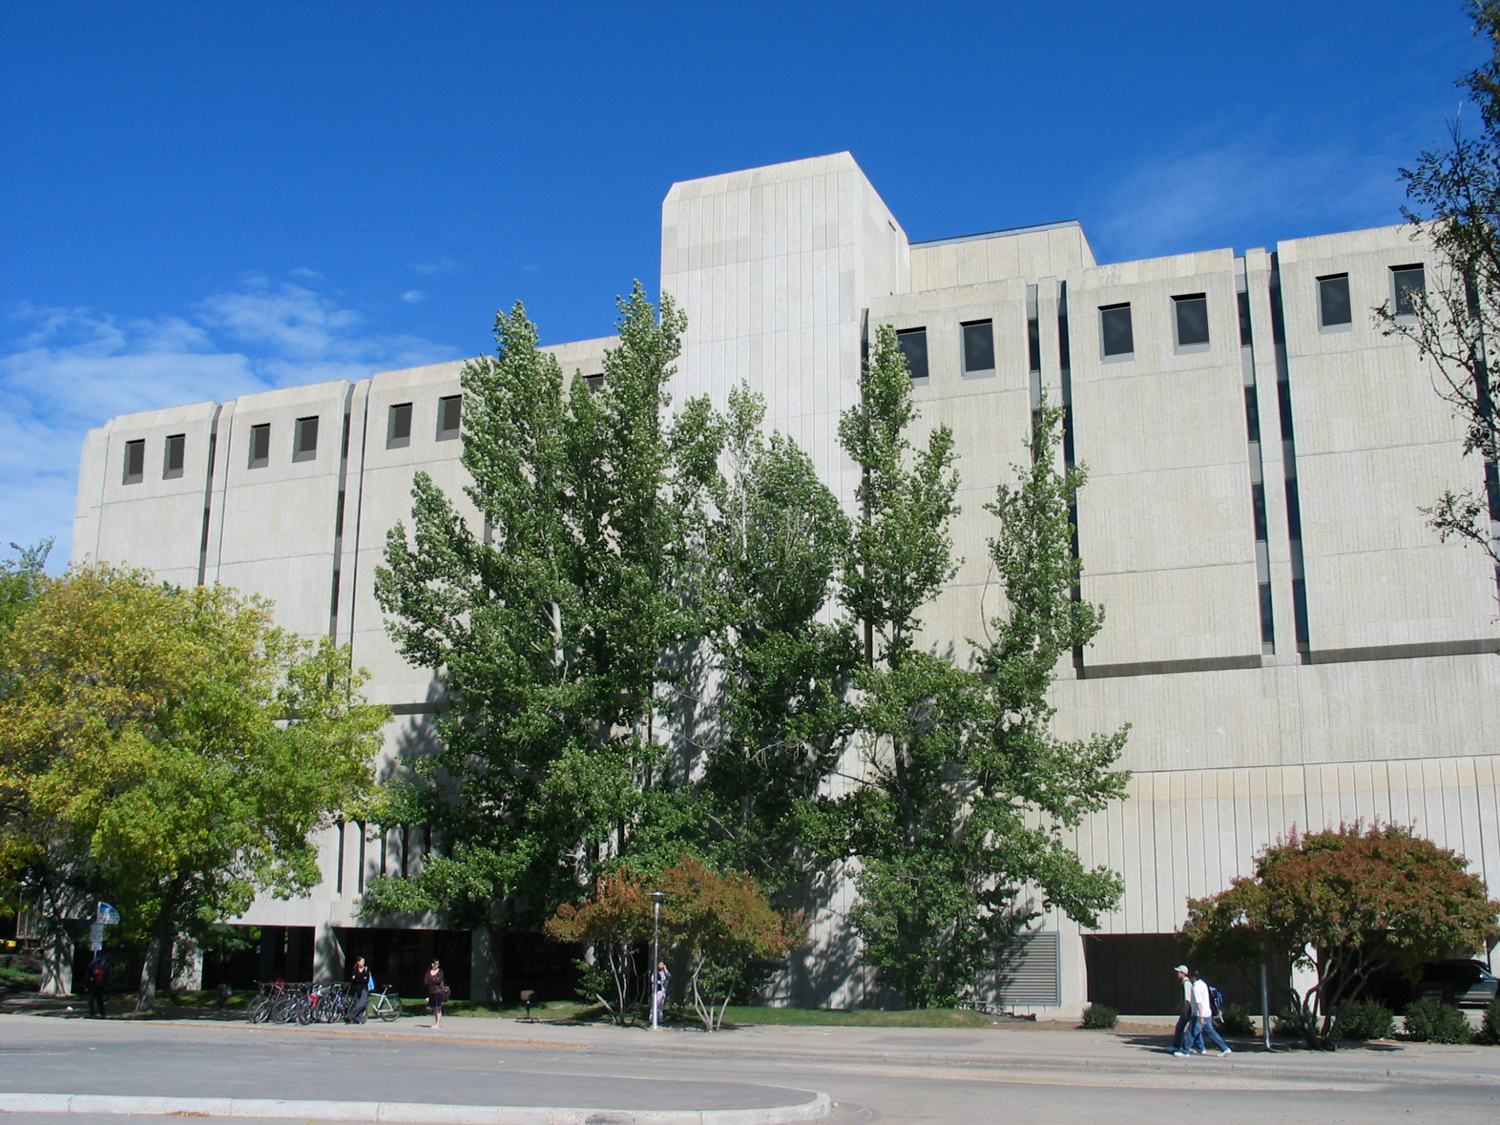 Murray Library building exterior, as seen from across the street